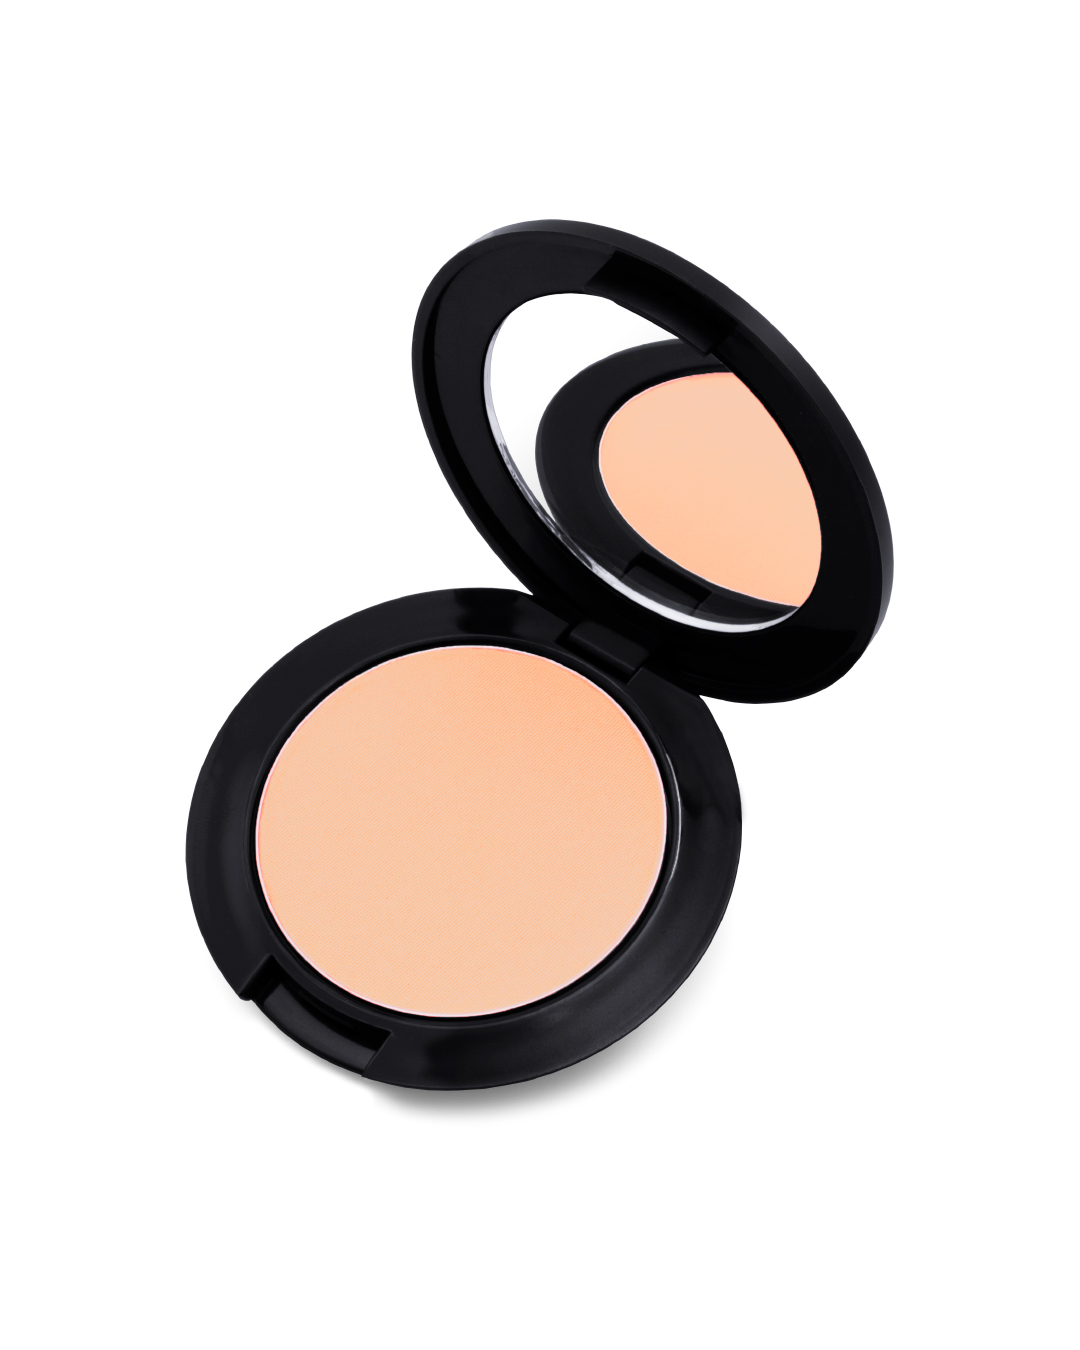 SESA - MICRONIZED PRESSED POWDER